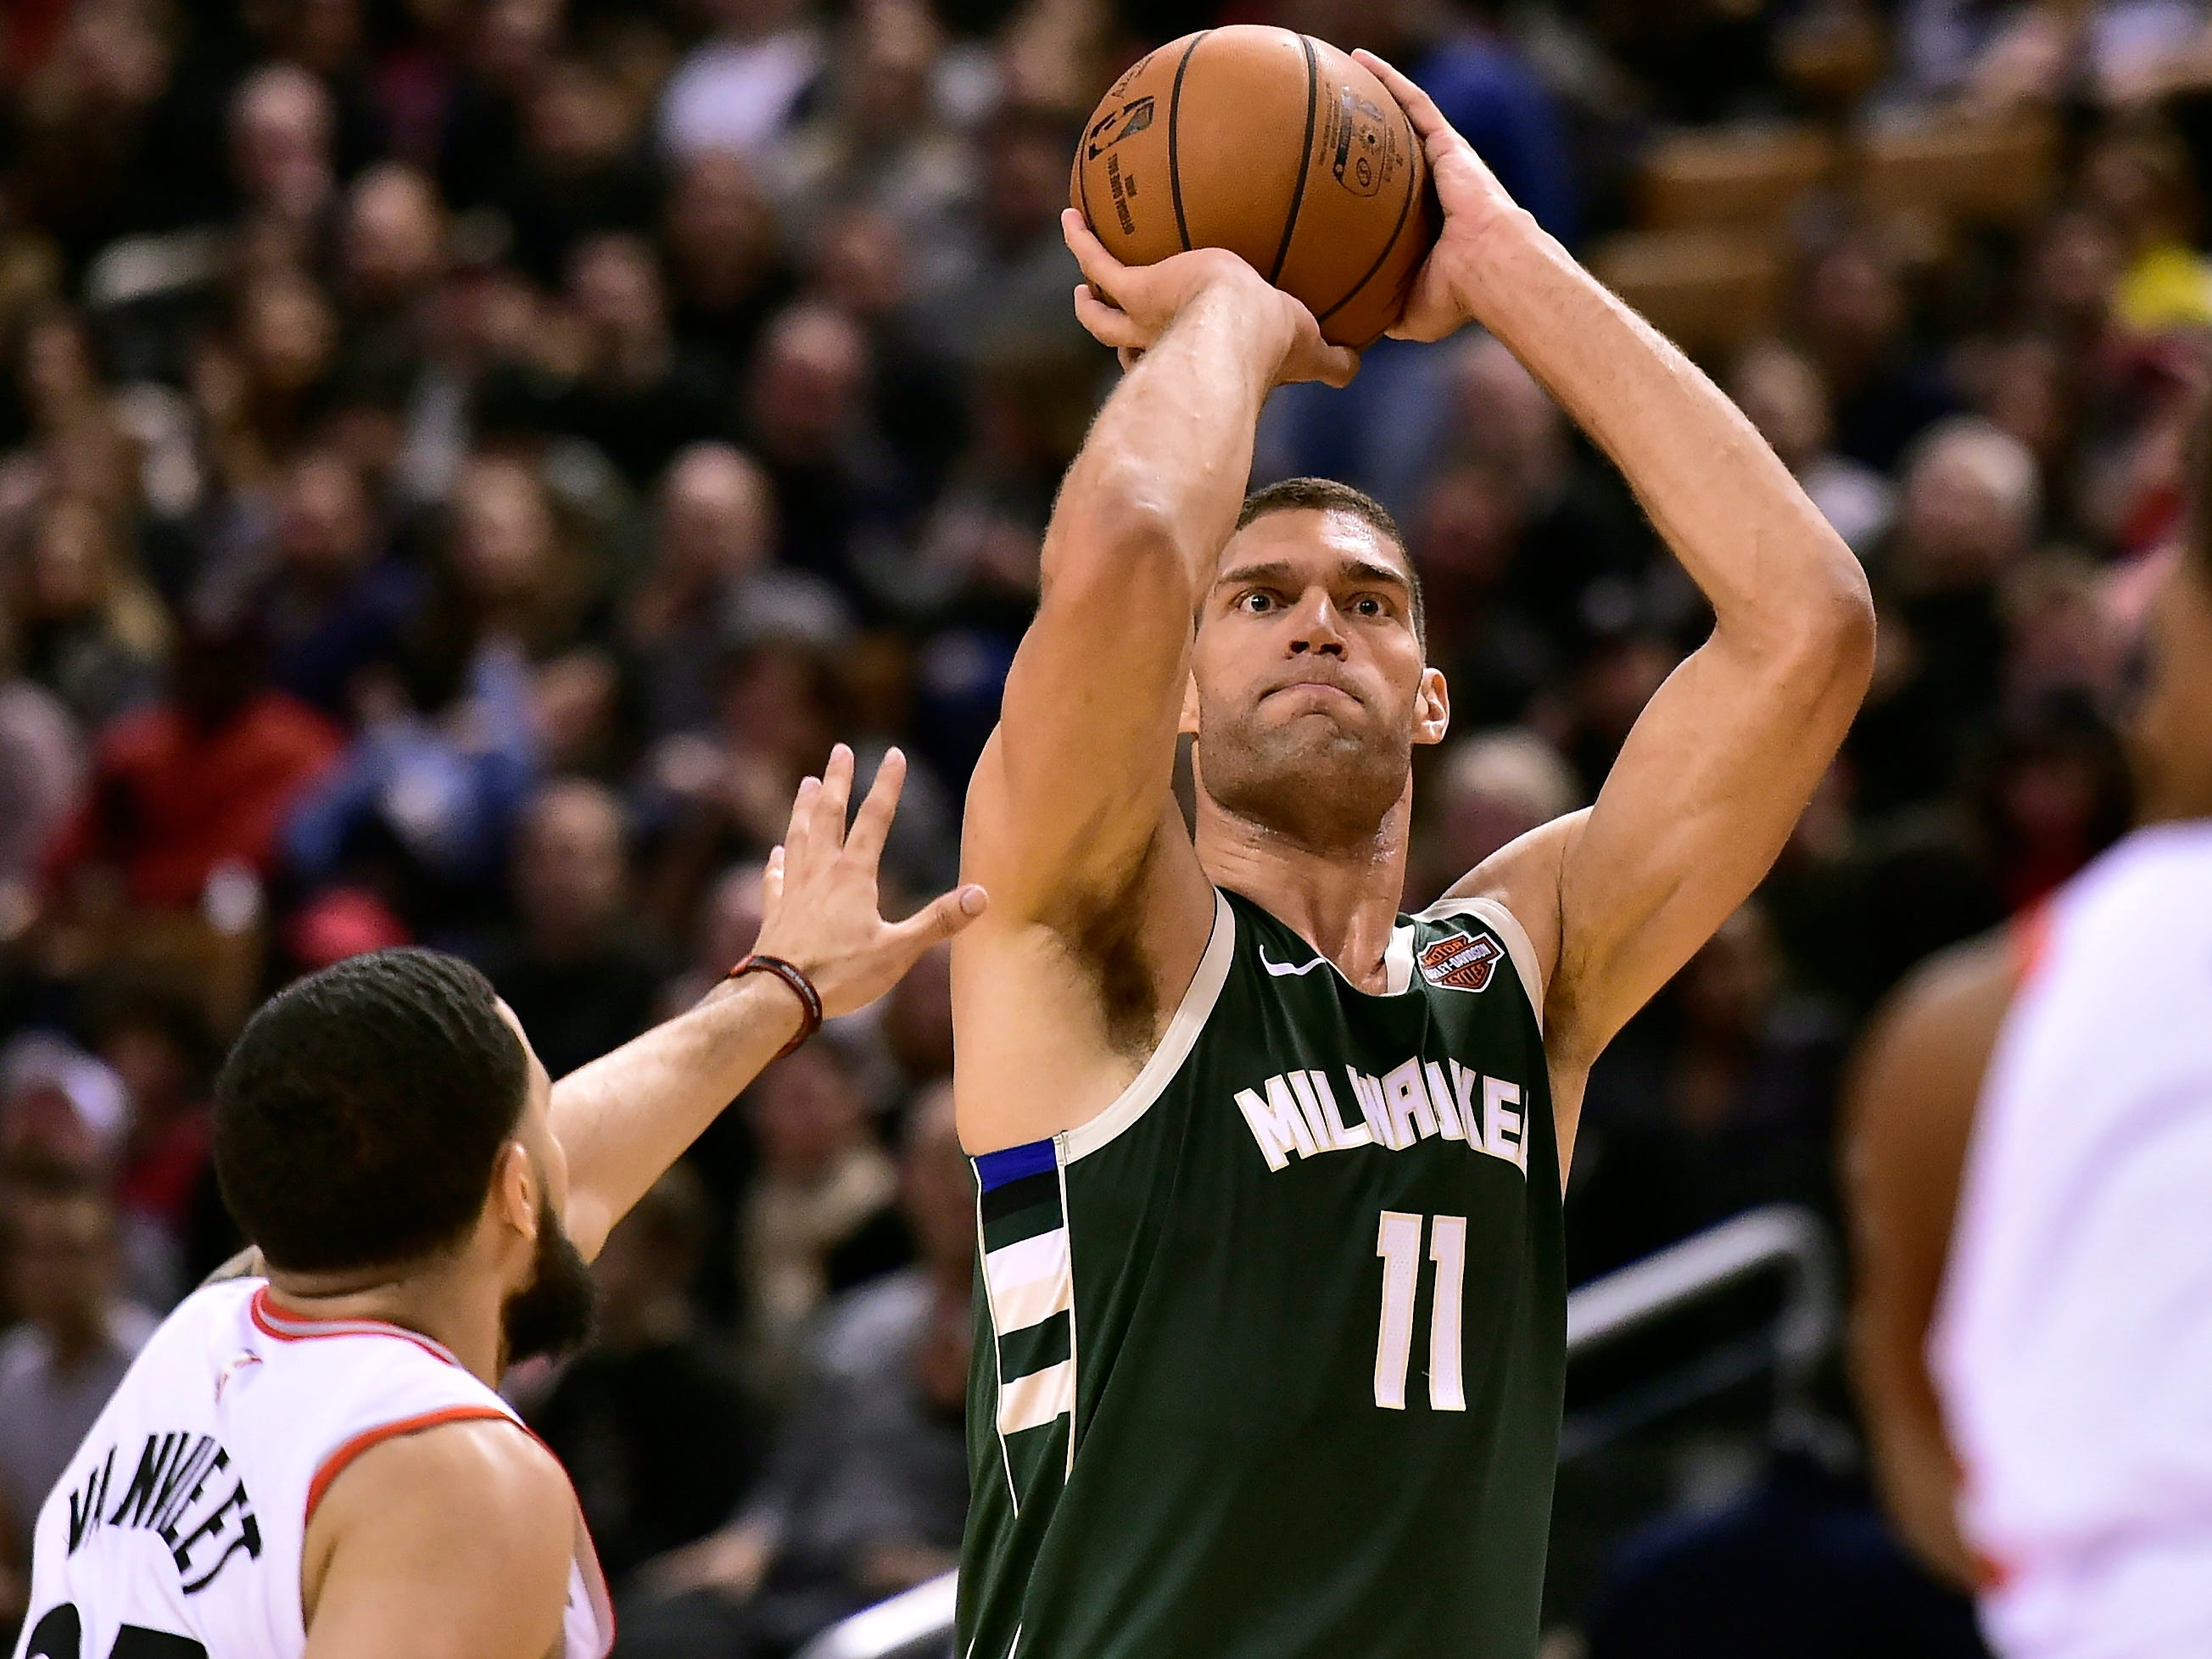 Milwaukee Bucks center Brook Lopez (11) lines up a three point shot as Toronto Raptors guard Fred VanVleet (23) attempts to defend during first half NBA basketball action in Toronto on Sunday, Dec. 9, 2018. (Frank Gunn/The Canadian Press via AP)